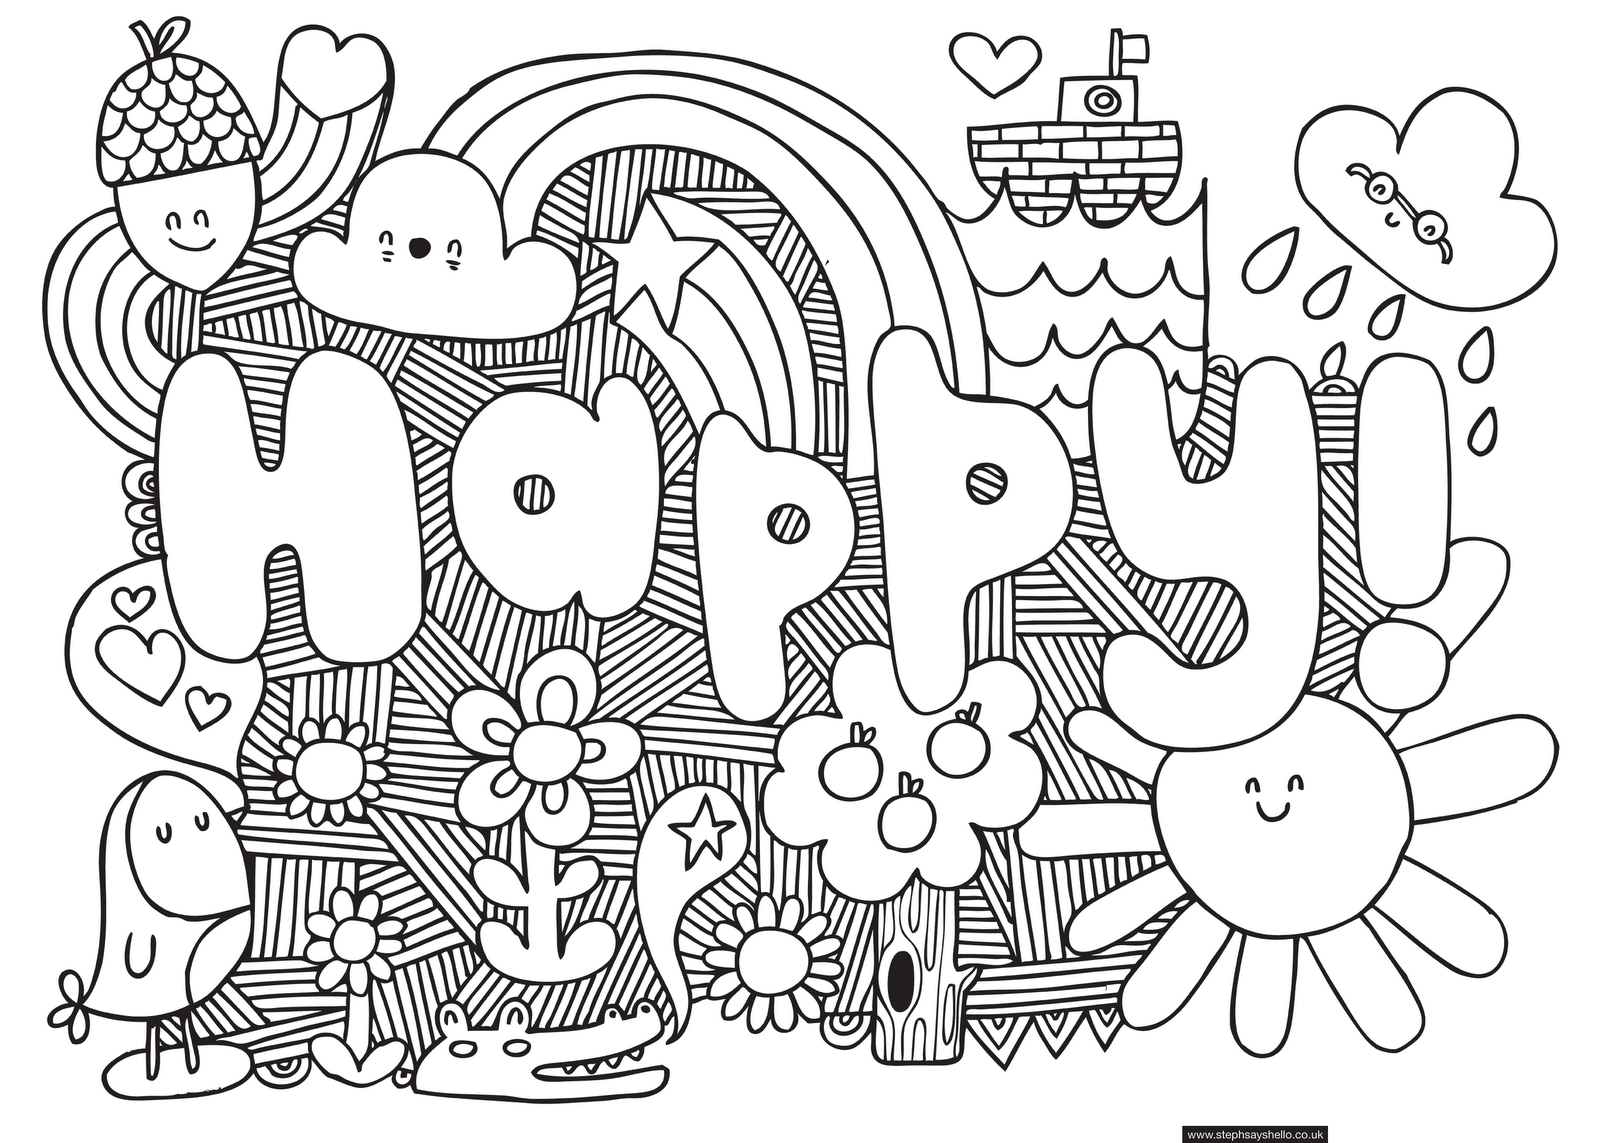 Adult Cute Cool Coloring Pages For Older Kids Images cute older kids coloring pages az cool for and adults images